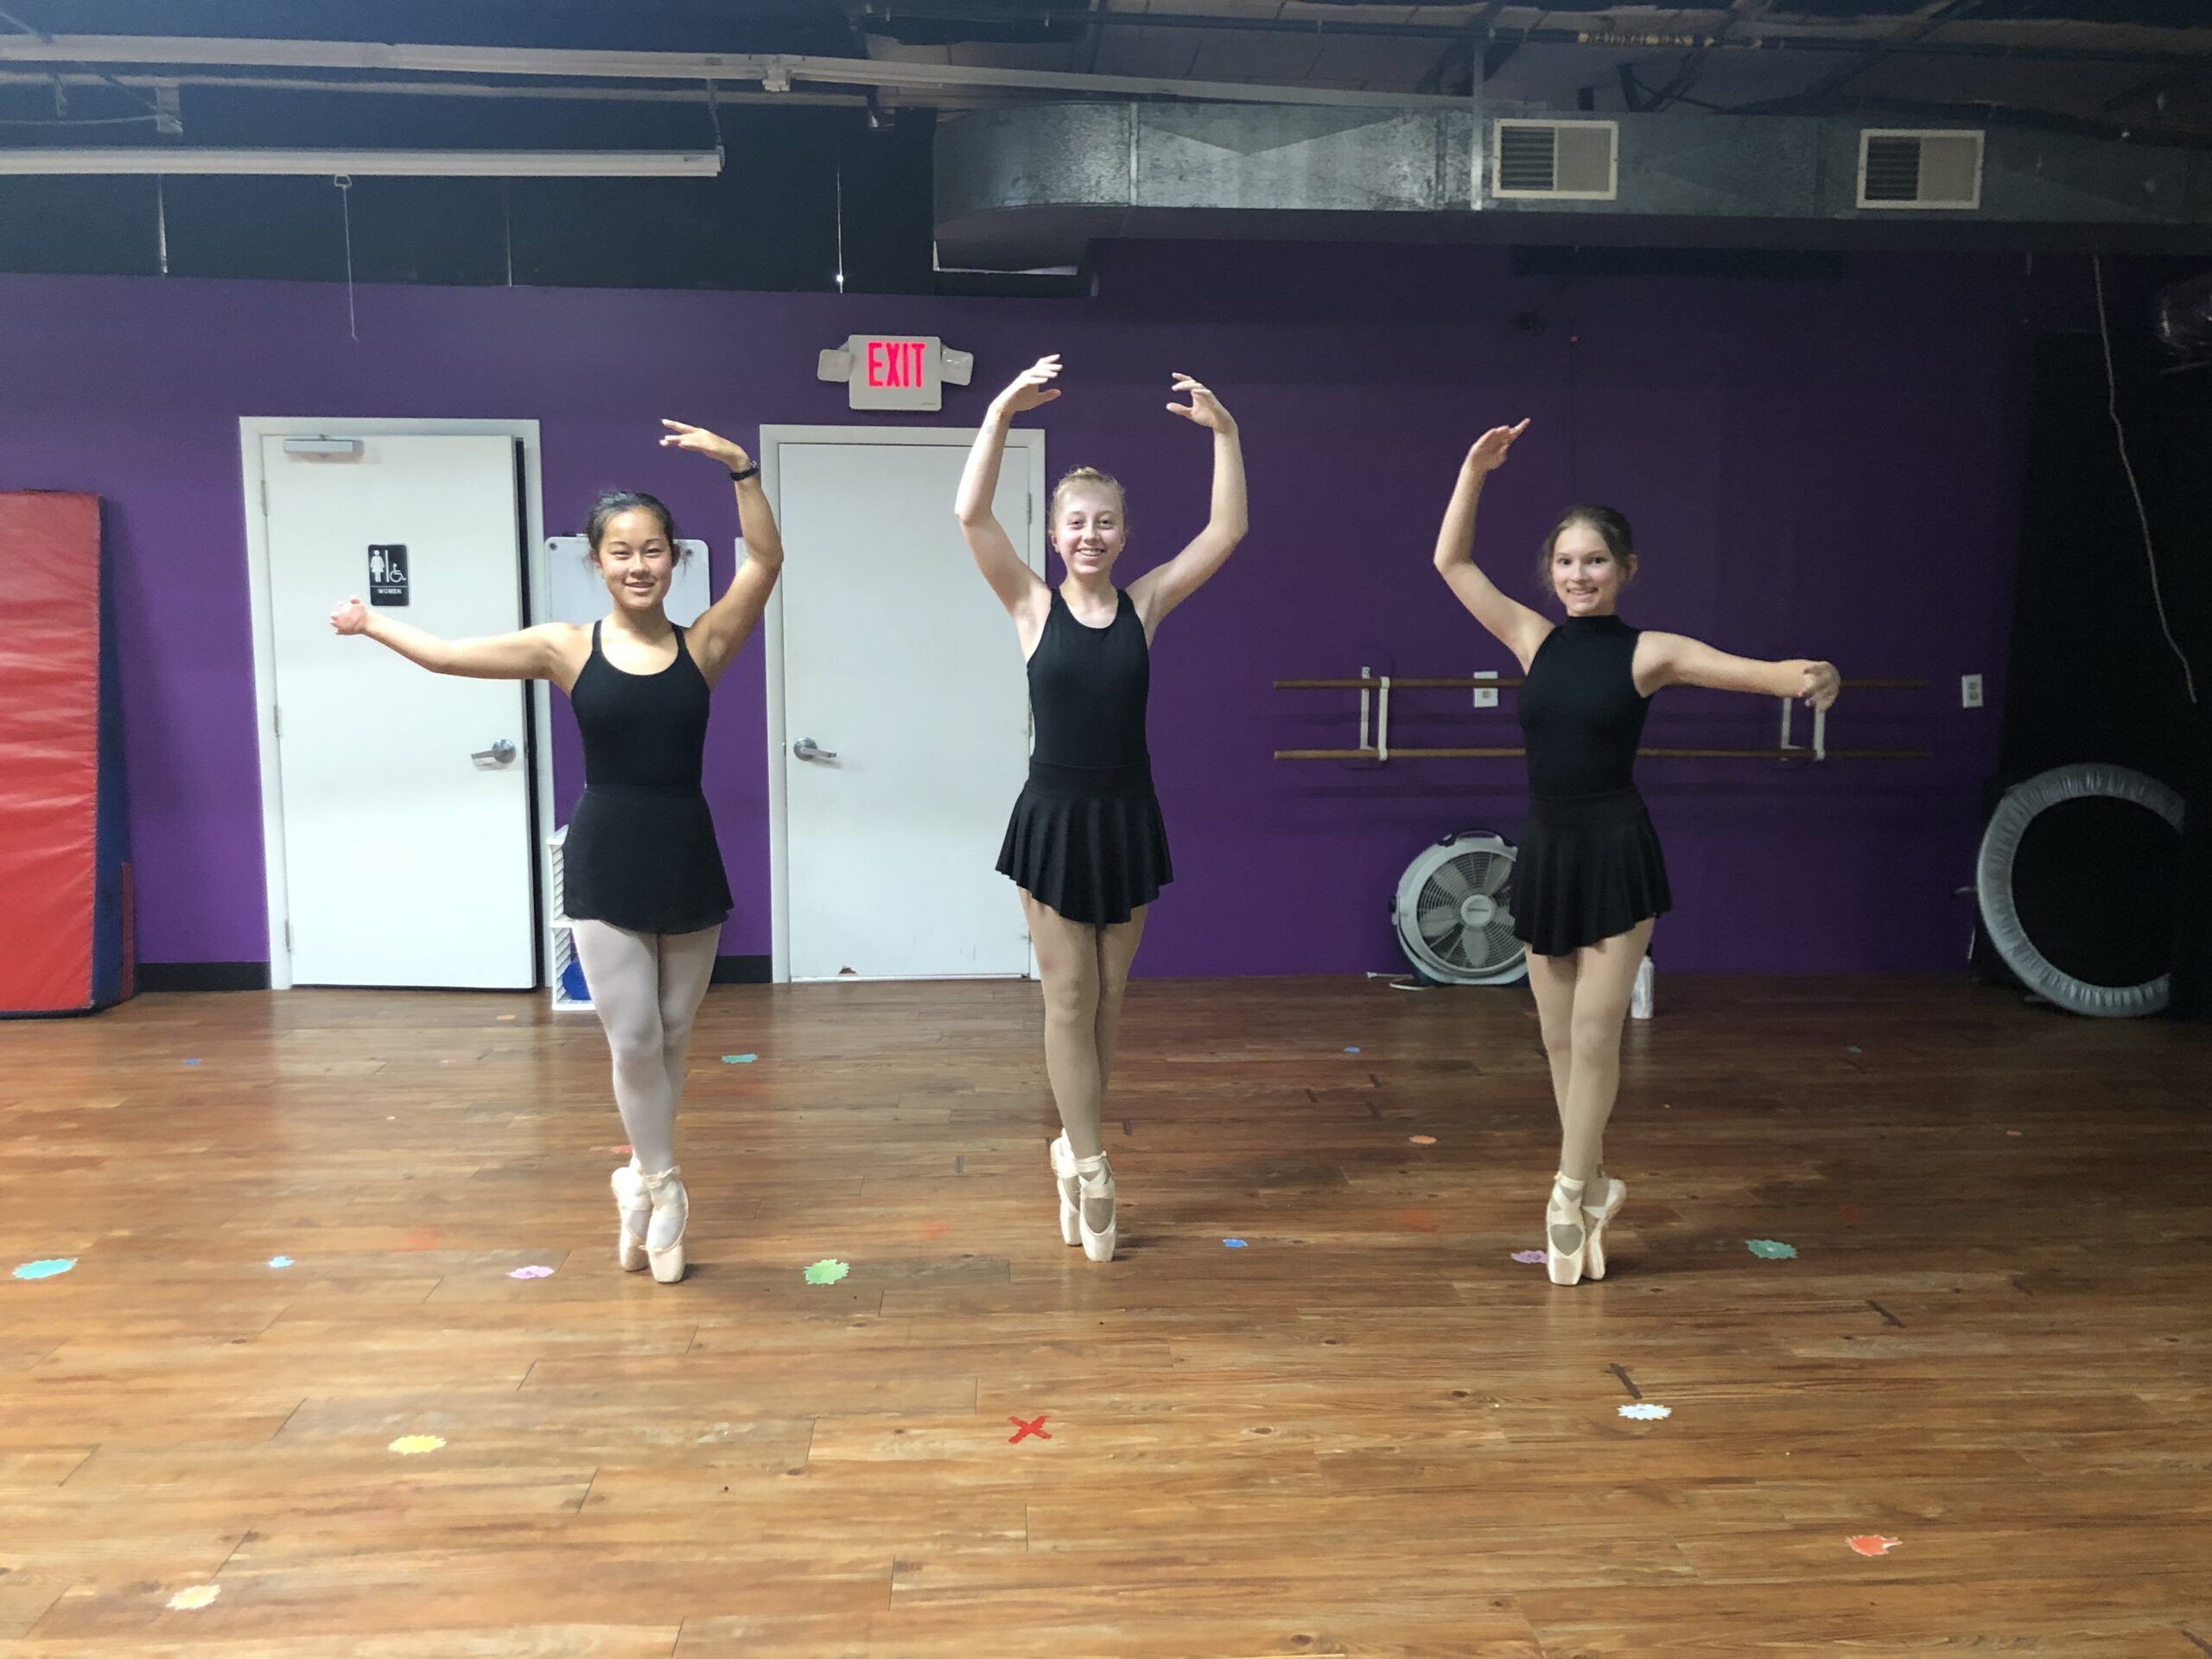 3 dancers standing on pointe in dress code